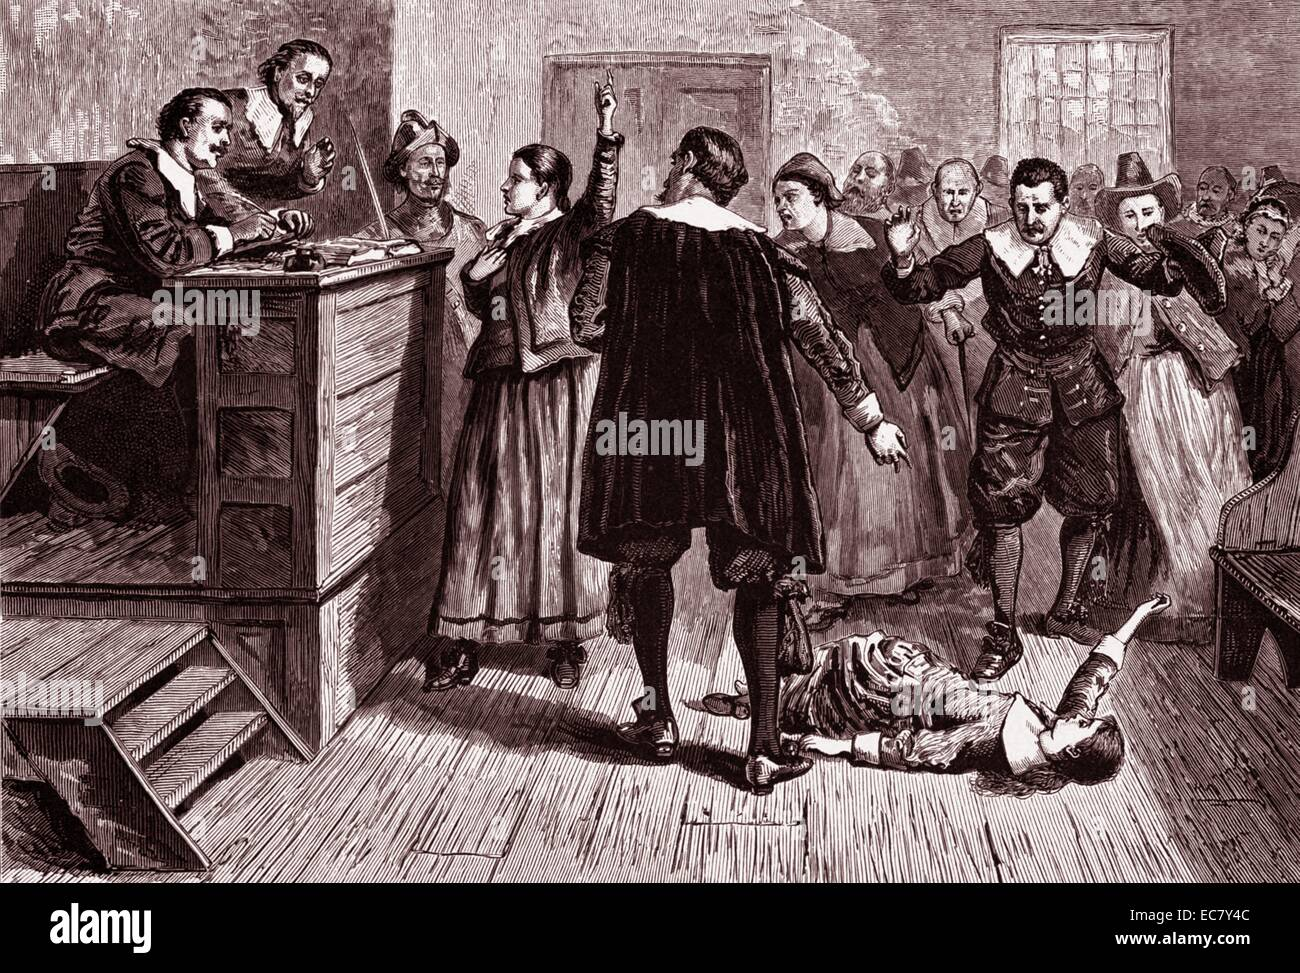 Engraving depicts witchcraft trial. Mary Walcott (1675-1720) is shown here as a witness. Dated 1876 - Stock Image